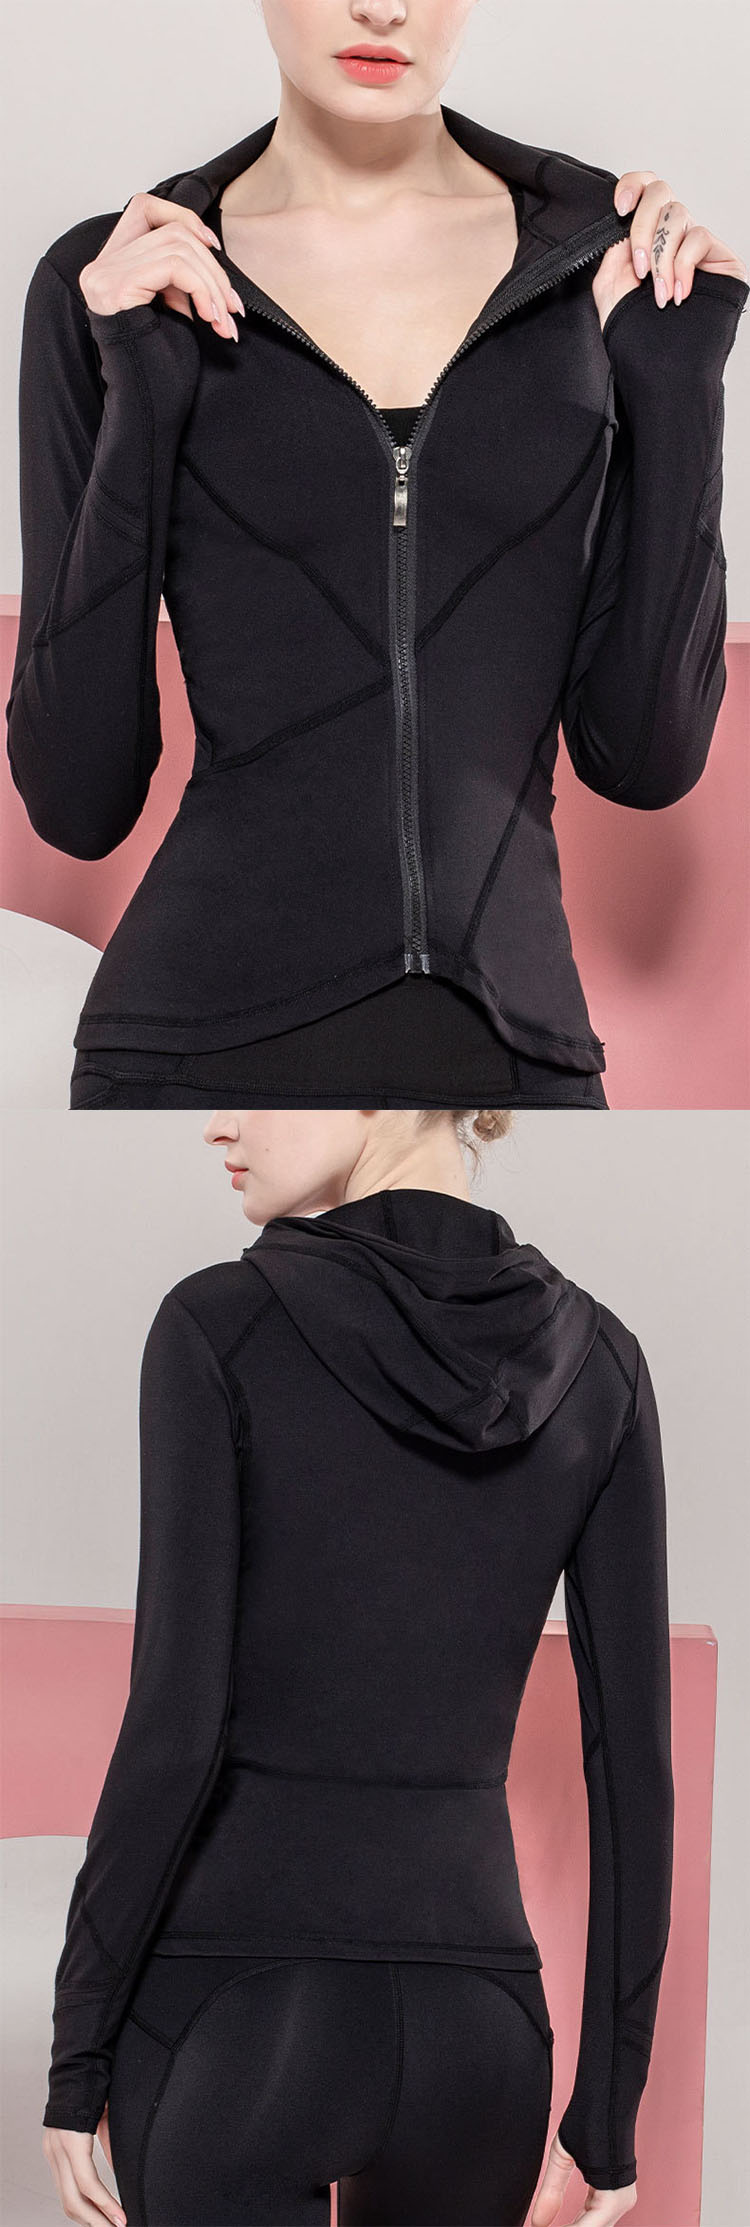 the versatility of ladies track top and the extension of the use cycle are more important.